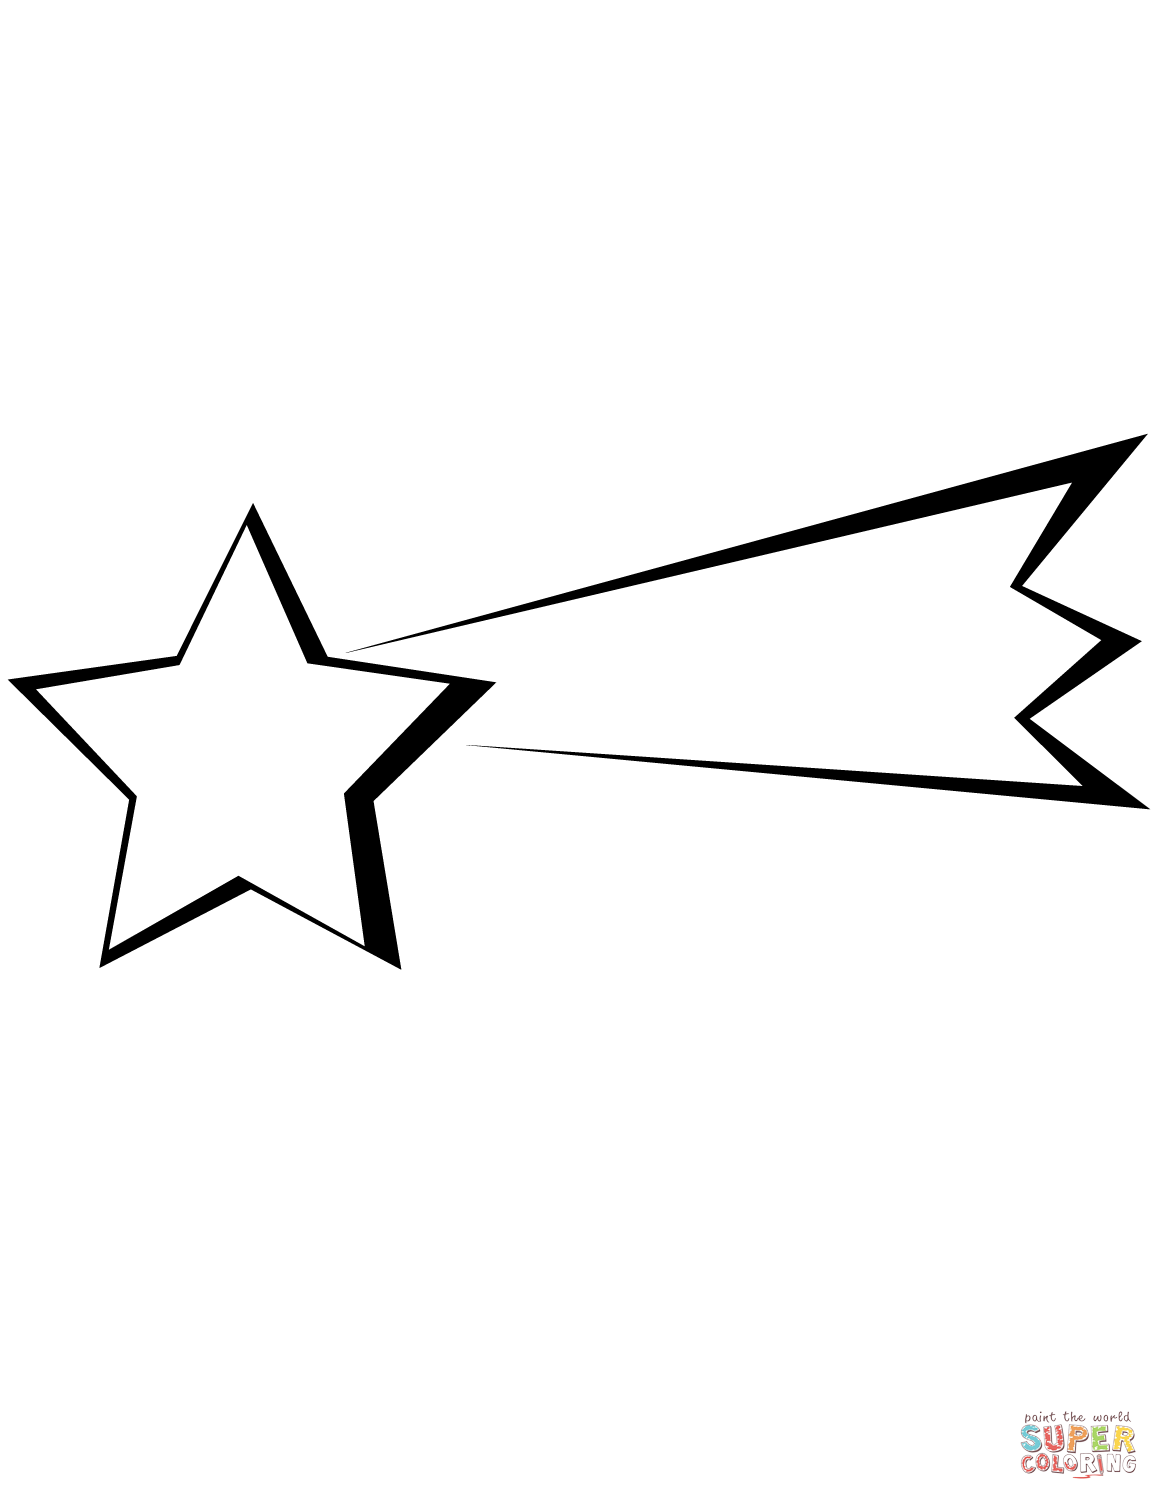 star of bethlehem coloring page christmas star coloring pages color online free printable of star page coloring bethlehem